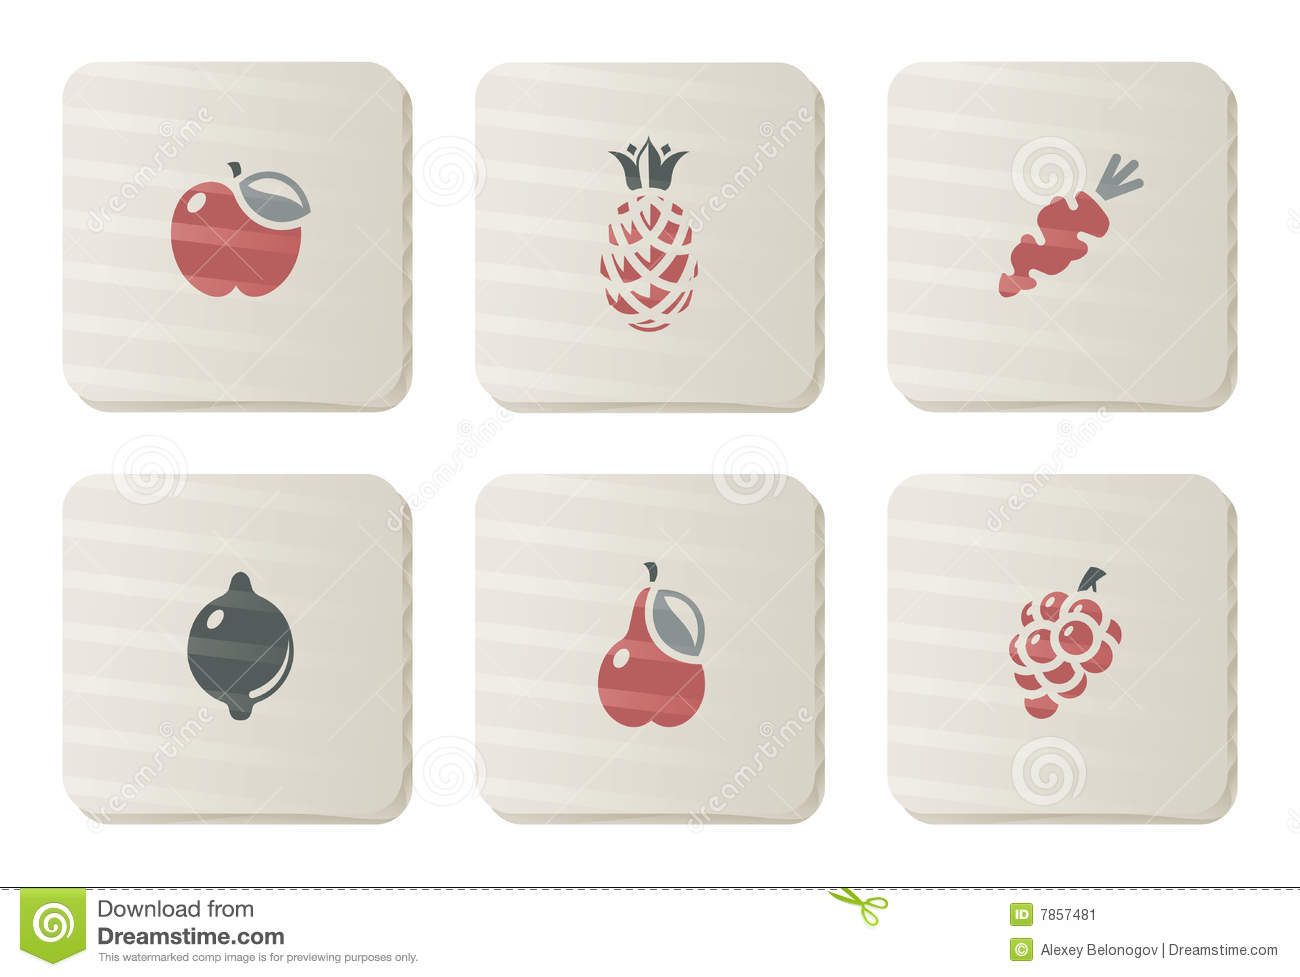 Fruits and Vegetables icons   Cardboard series